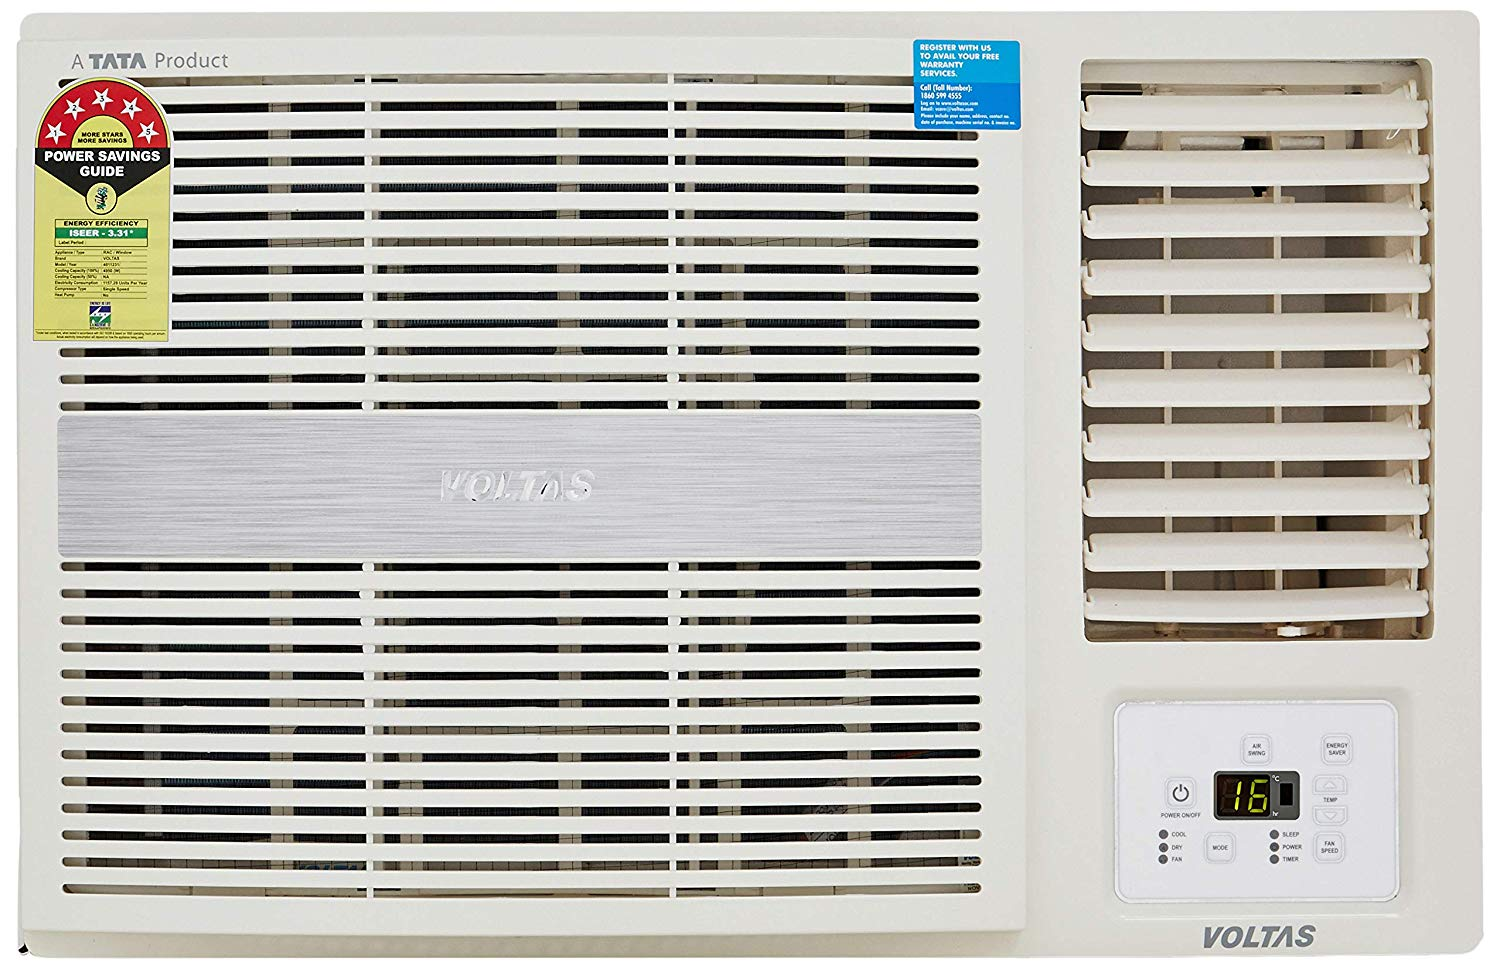 Voltas 1.5 Ton Window AC